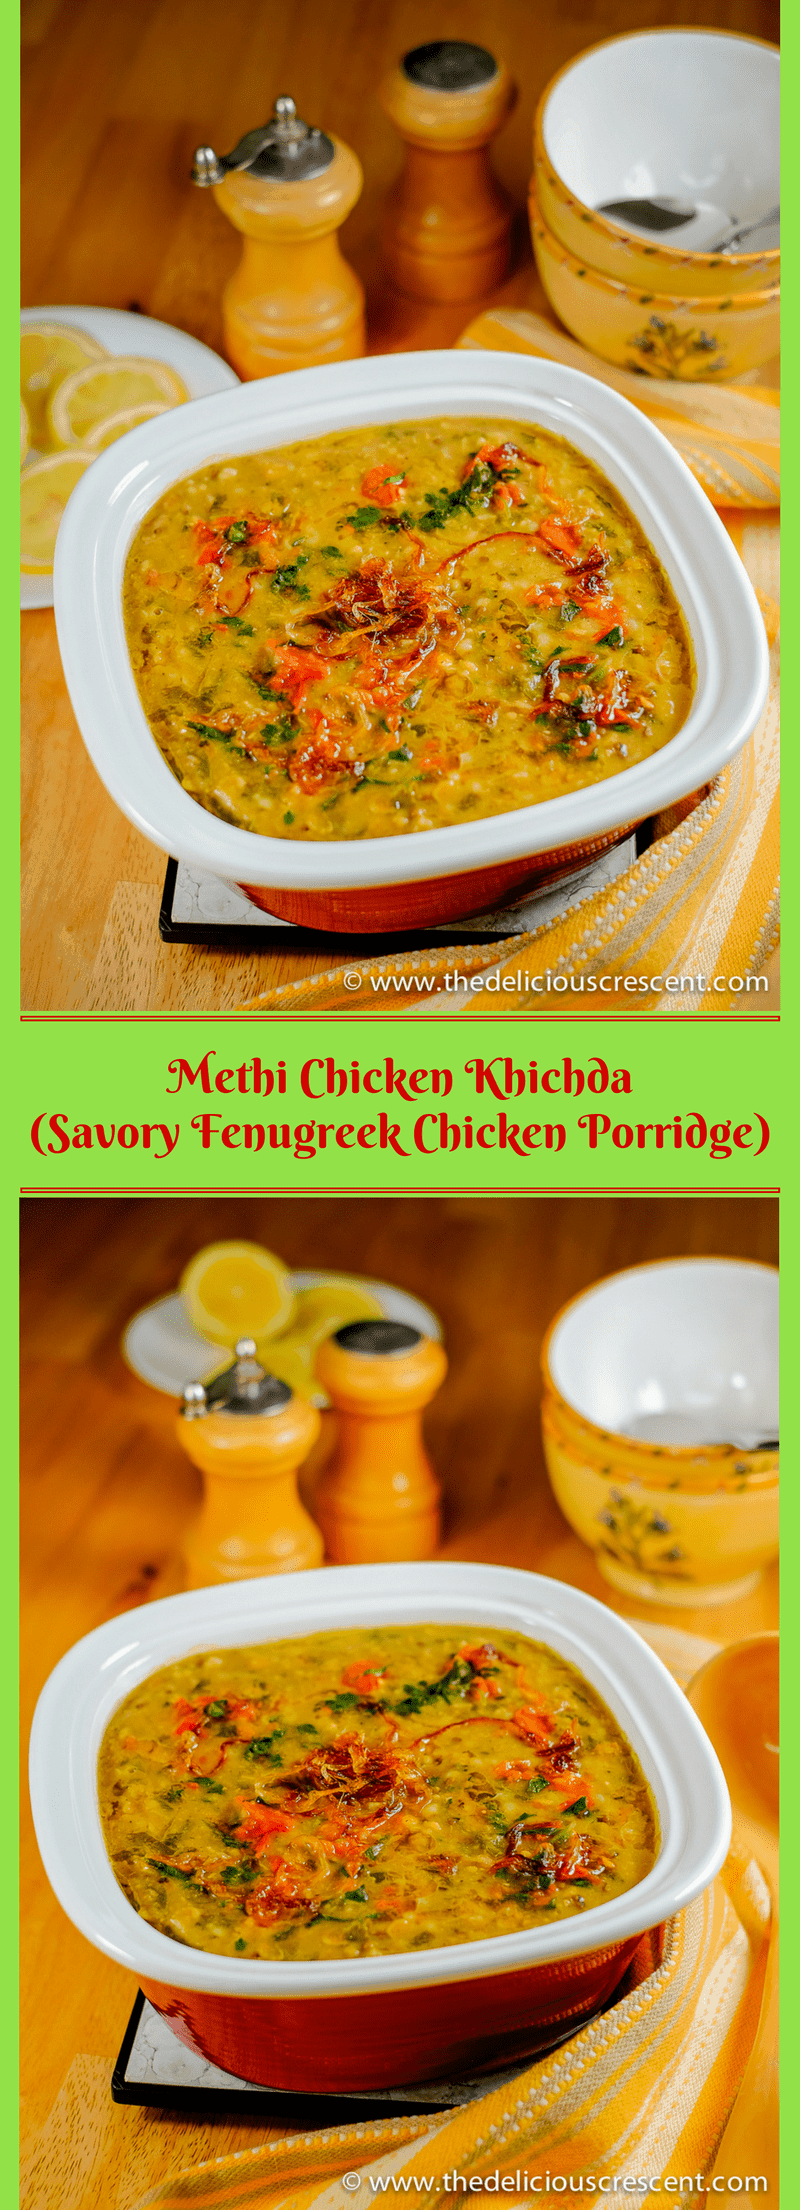 Methi Chicken Khichda is a tantalizing spicy Indian style savory porridge – an easy, balanced, nutritious one pot steaming meal – with high fiber, good protein and healthy fats! An inspired version of an Indian delicacy known as Khichda, similar to Haleem, but here prepared with brown rice, fenugreek, chicken and rich in vitamins, minerals and antioxidants.